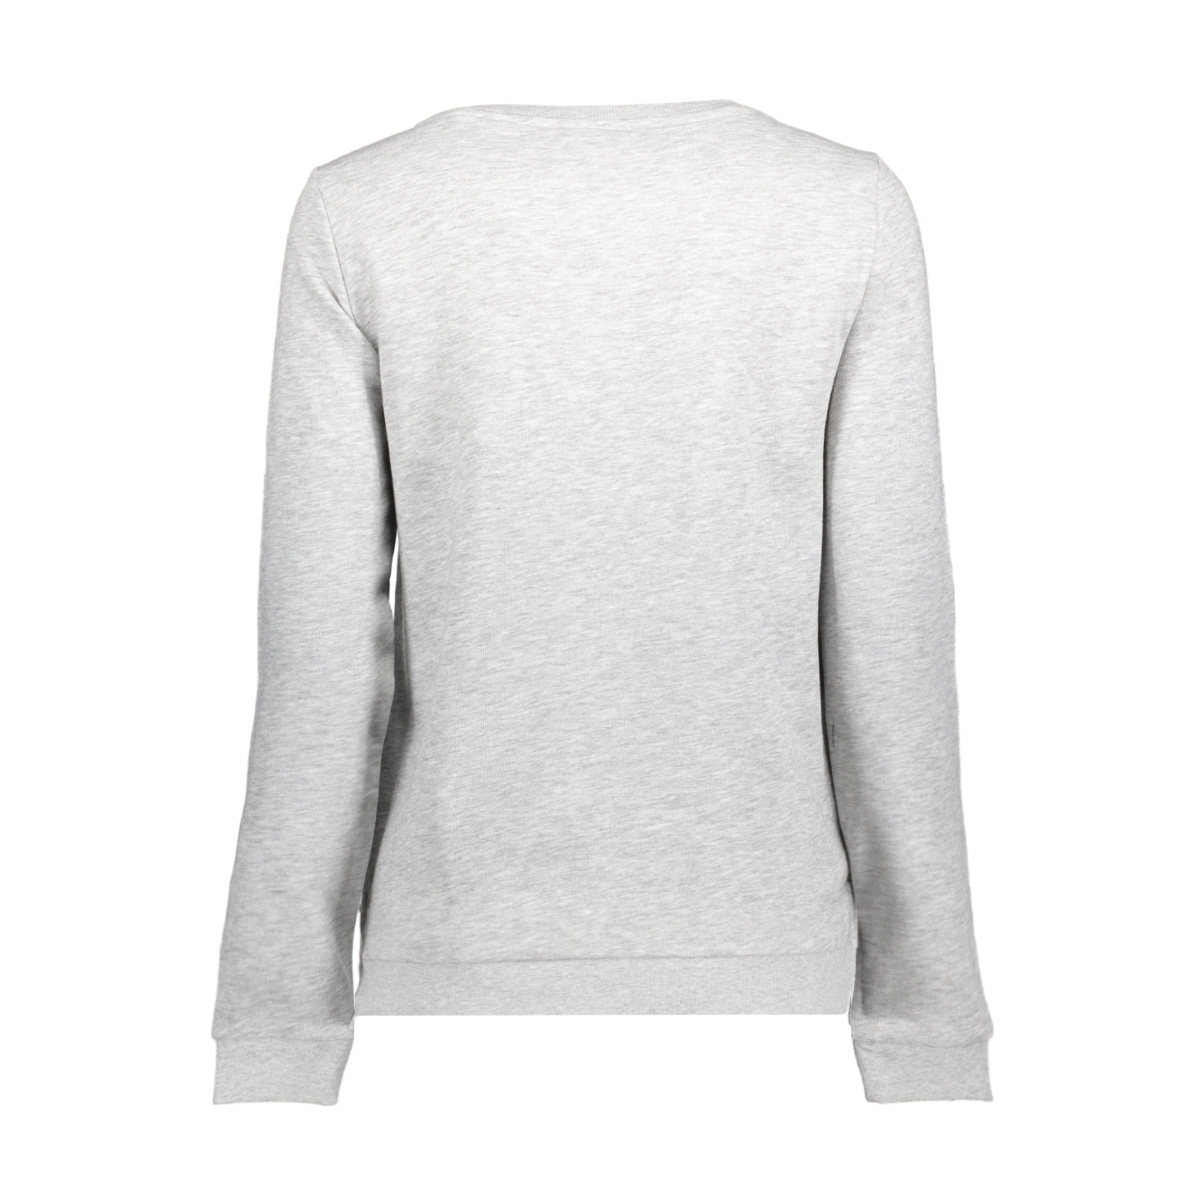 onlsound l/s o-neck box swt 15152509 only sweater light grey mela/whos